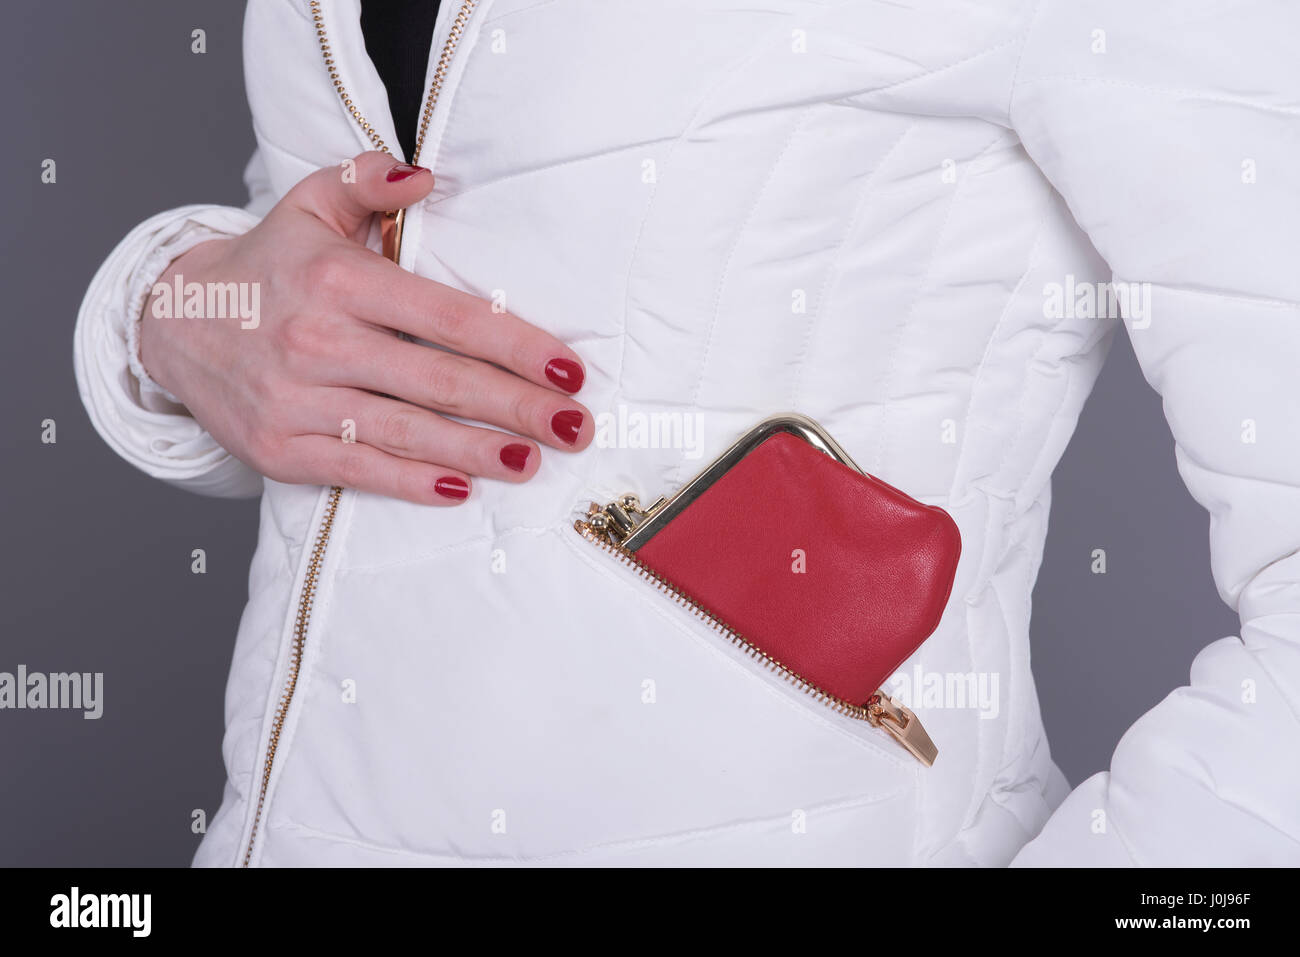 95380d0c51aed Woman wearing a white padded jacket with a red purse in the zipped pocket -  Stock